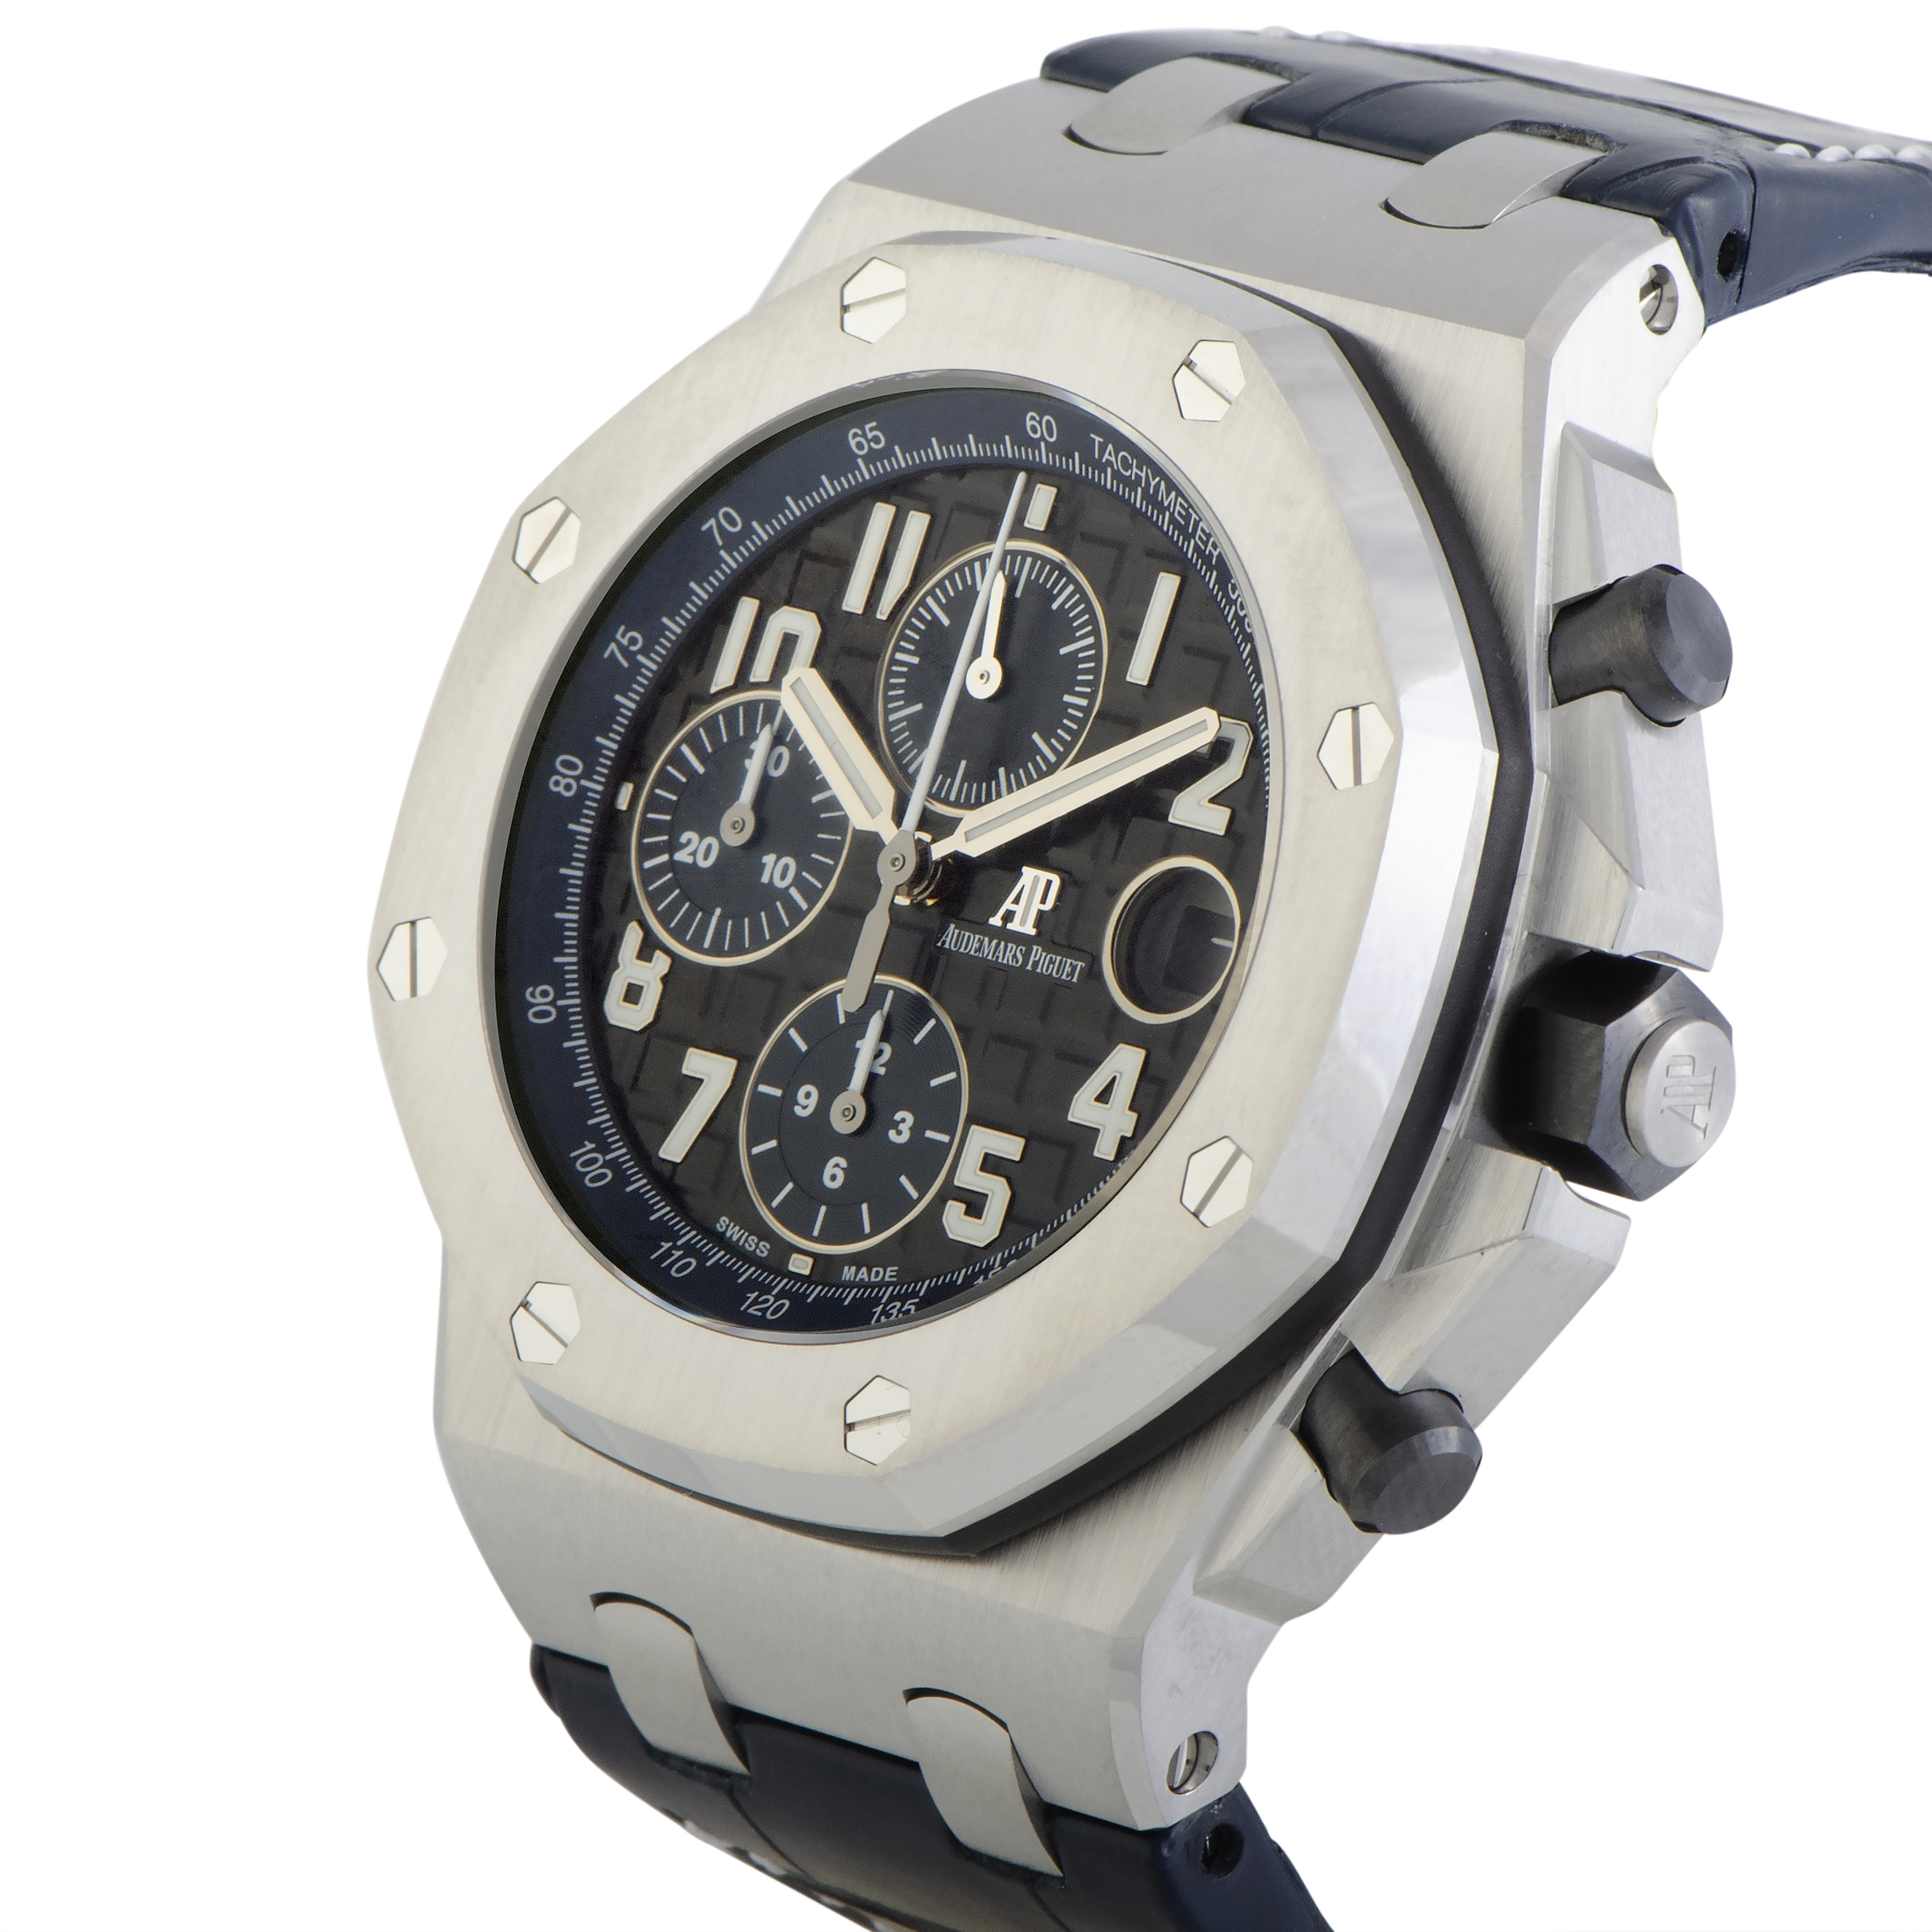 89347e8ebc55 Shop Audemars Piguet Royal Oak Offshore Chronograph 26470ST.OO.A028CR.01  for only  23